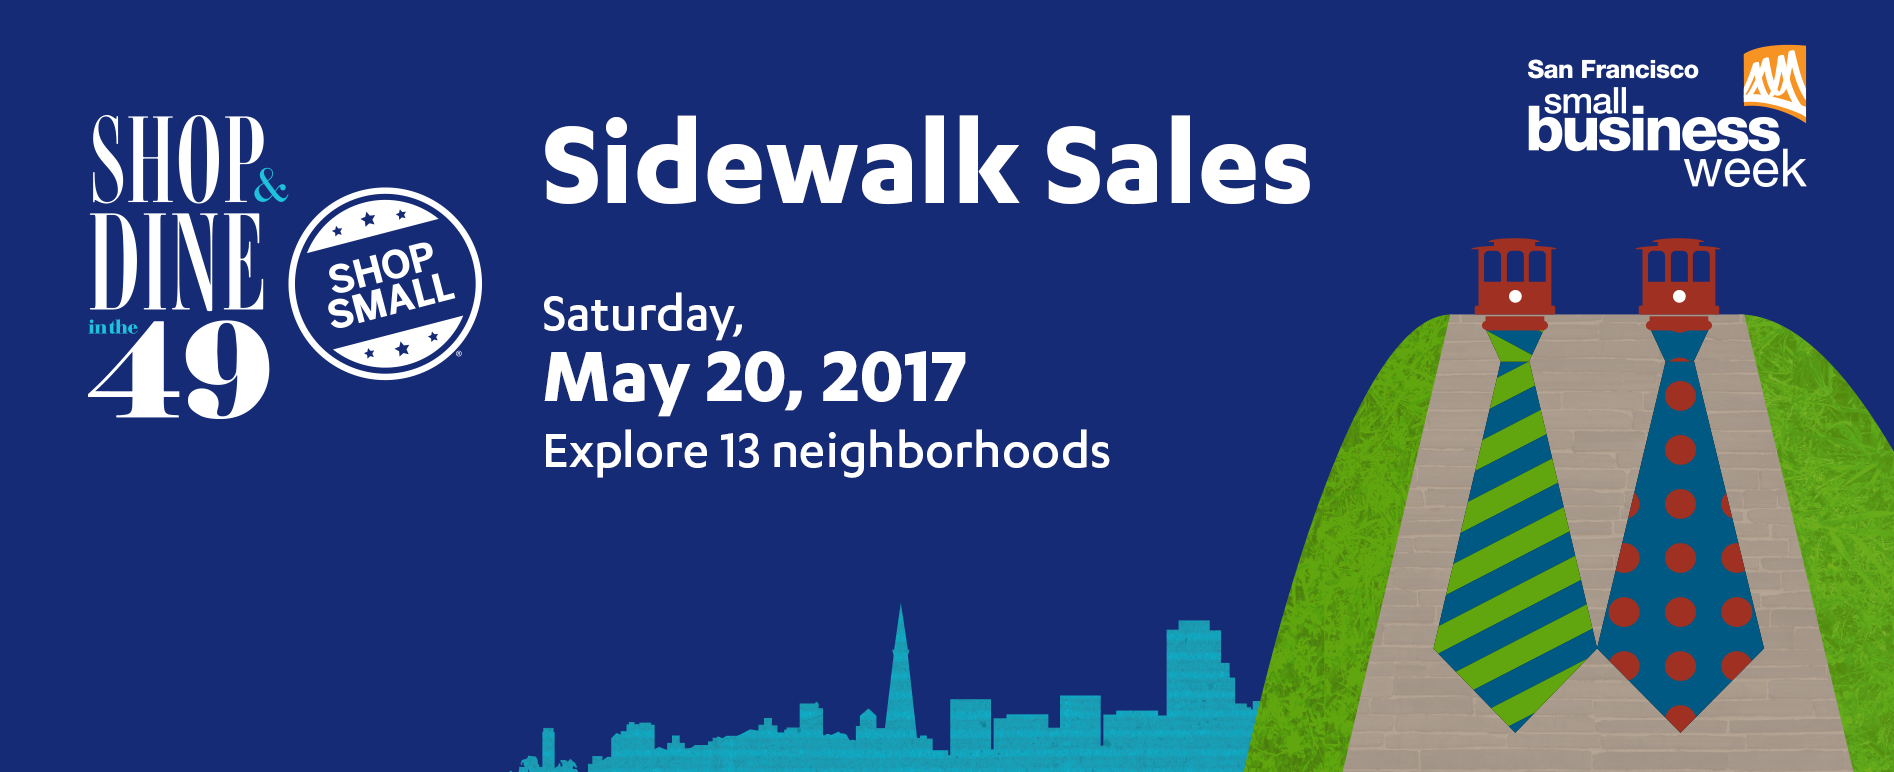 SD49 Sidewalk Sale